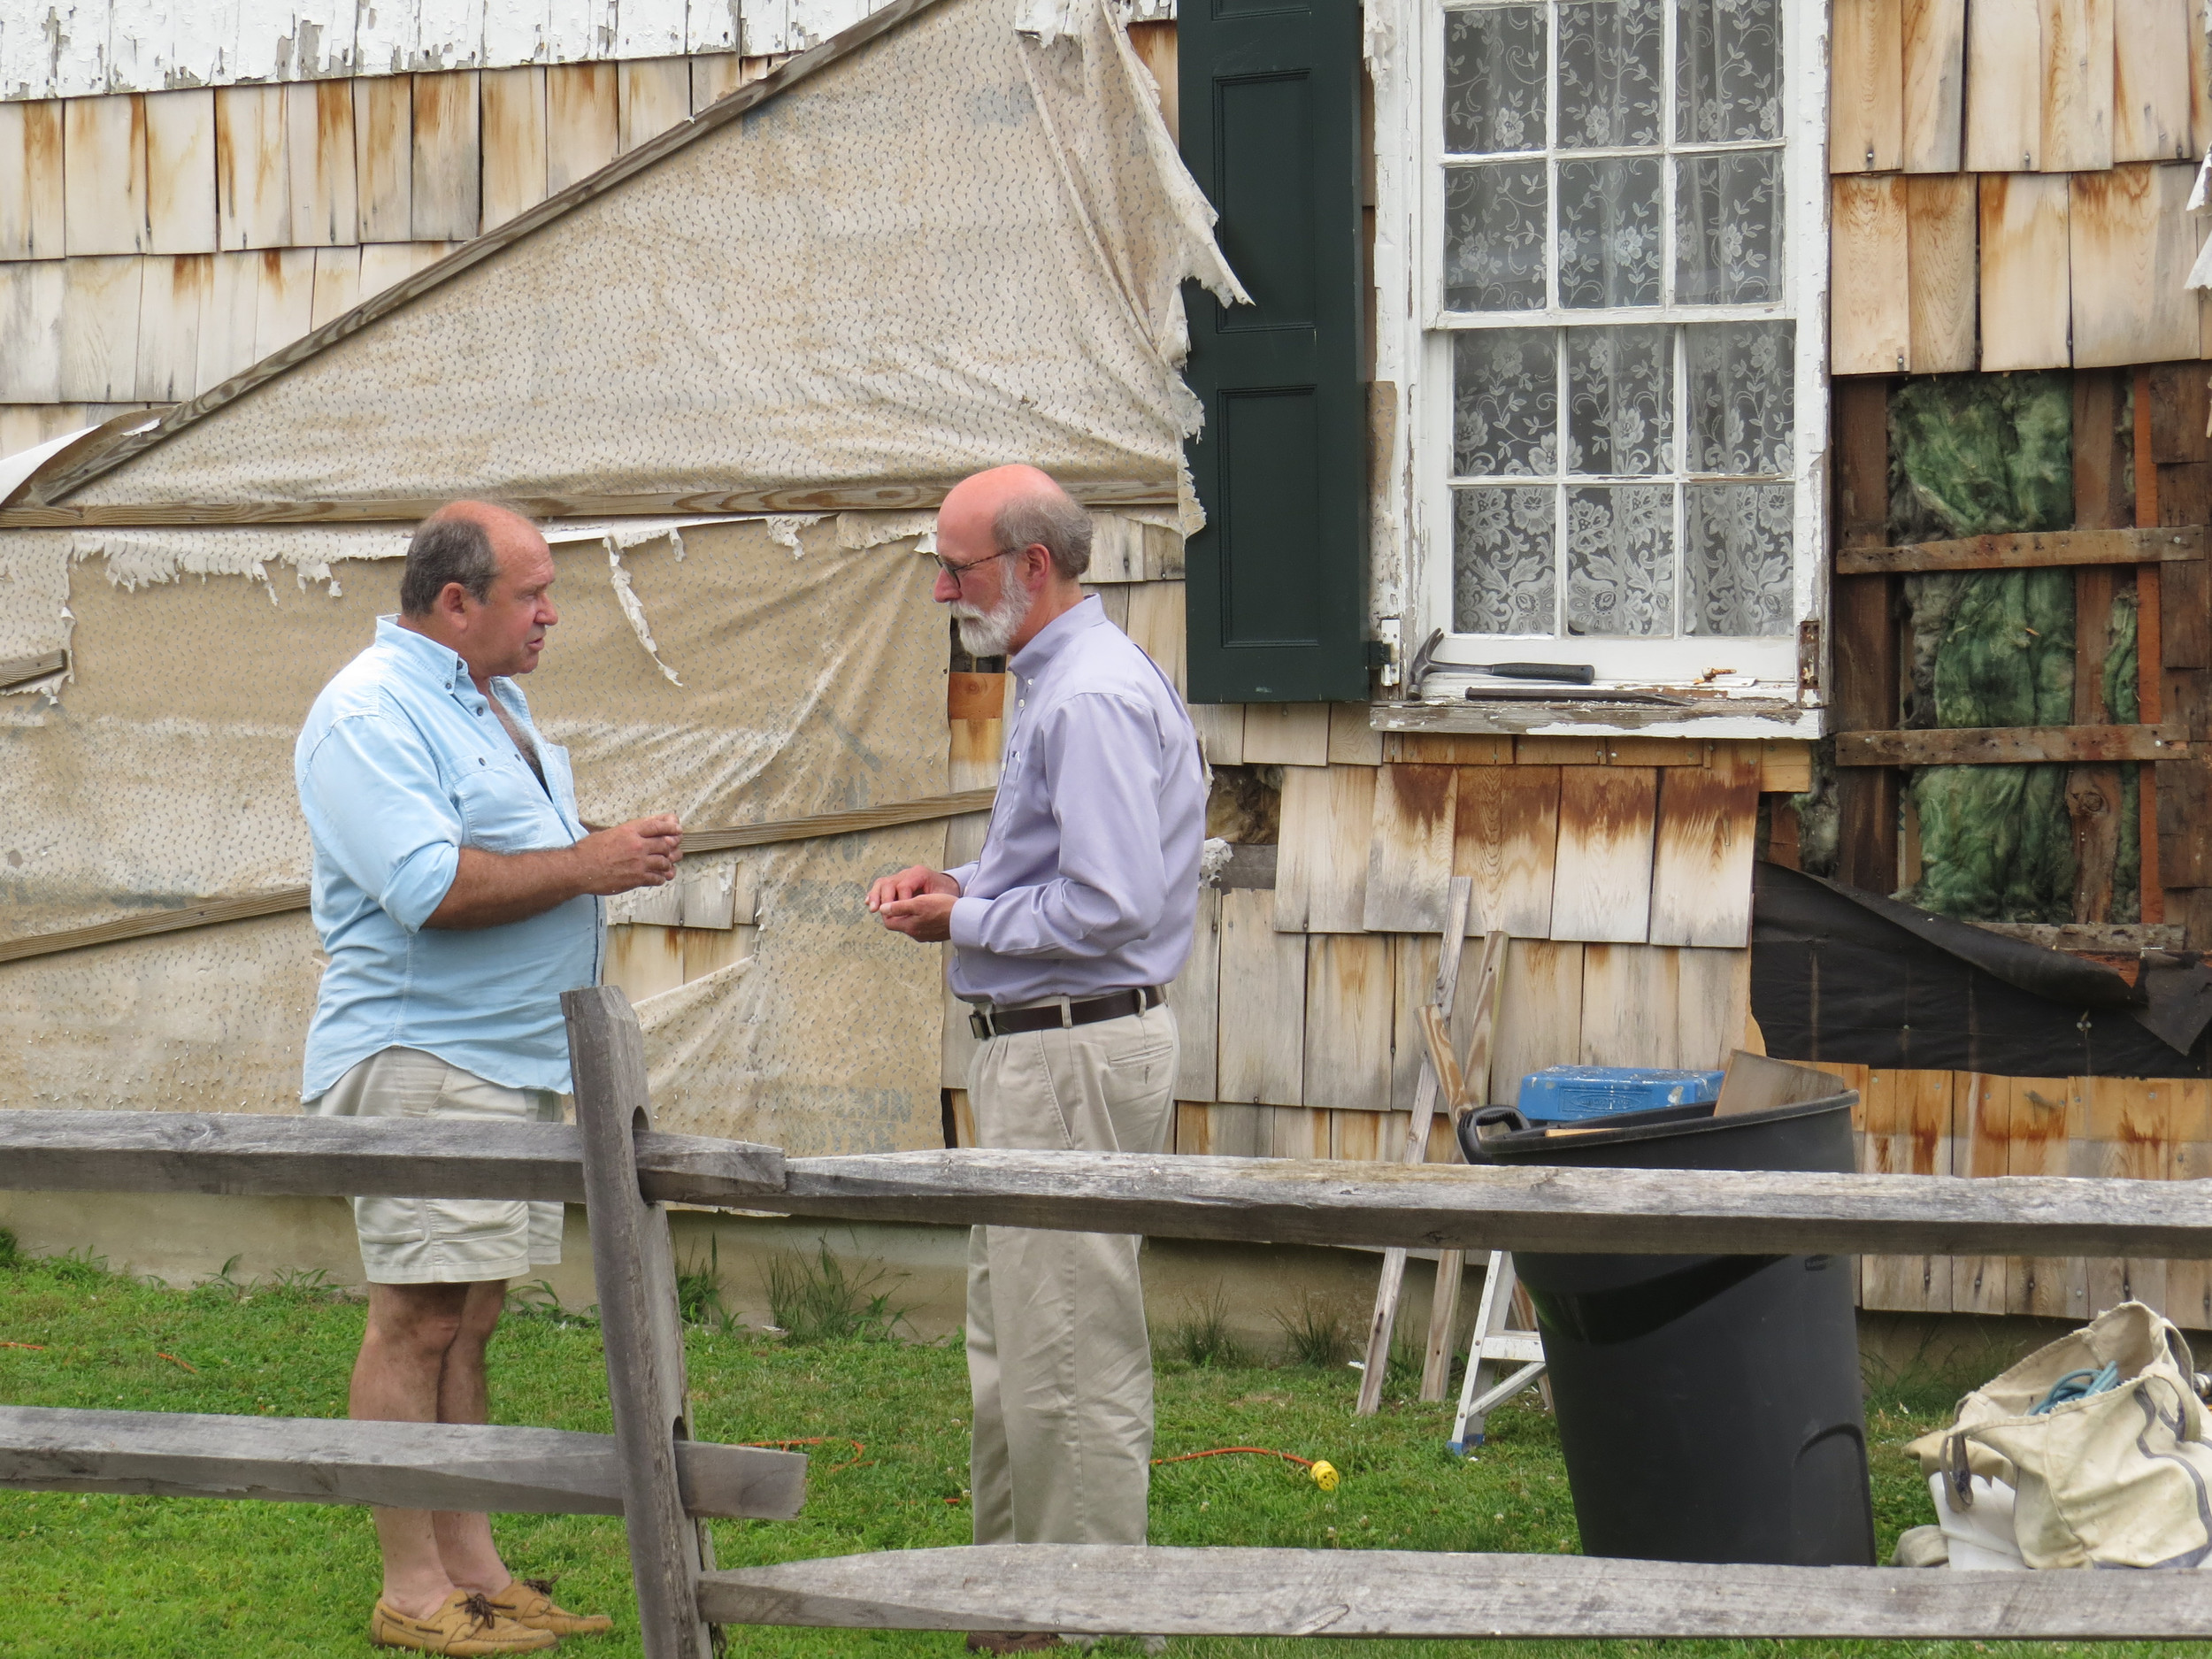 Charles Doering, left, discussed what needed to be done to the Earle- Wightman home with the O.B. Historical Society's Phil Blocklyn.